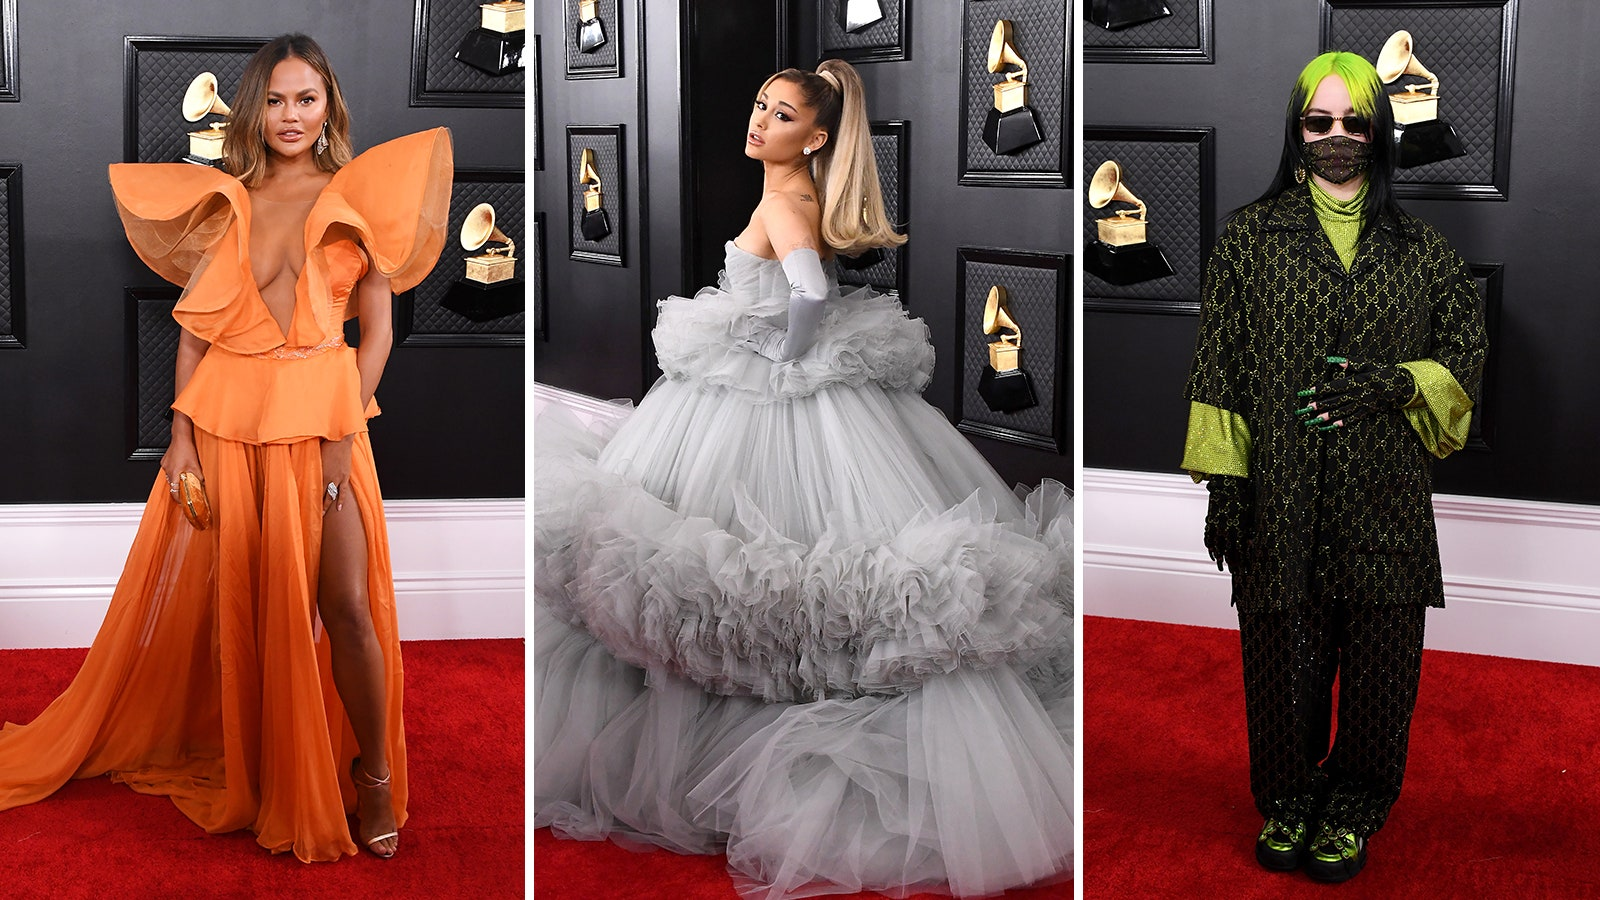 The 10 Best Red Carpet Looks From the 2020 Grammys